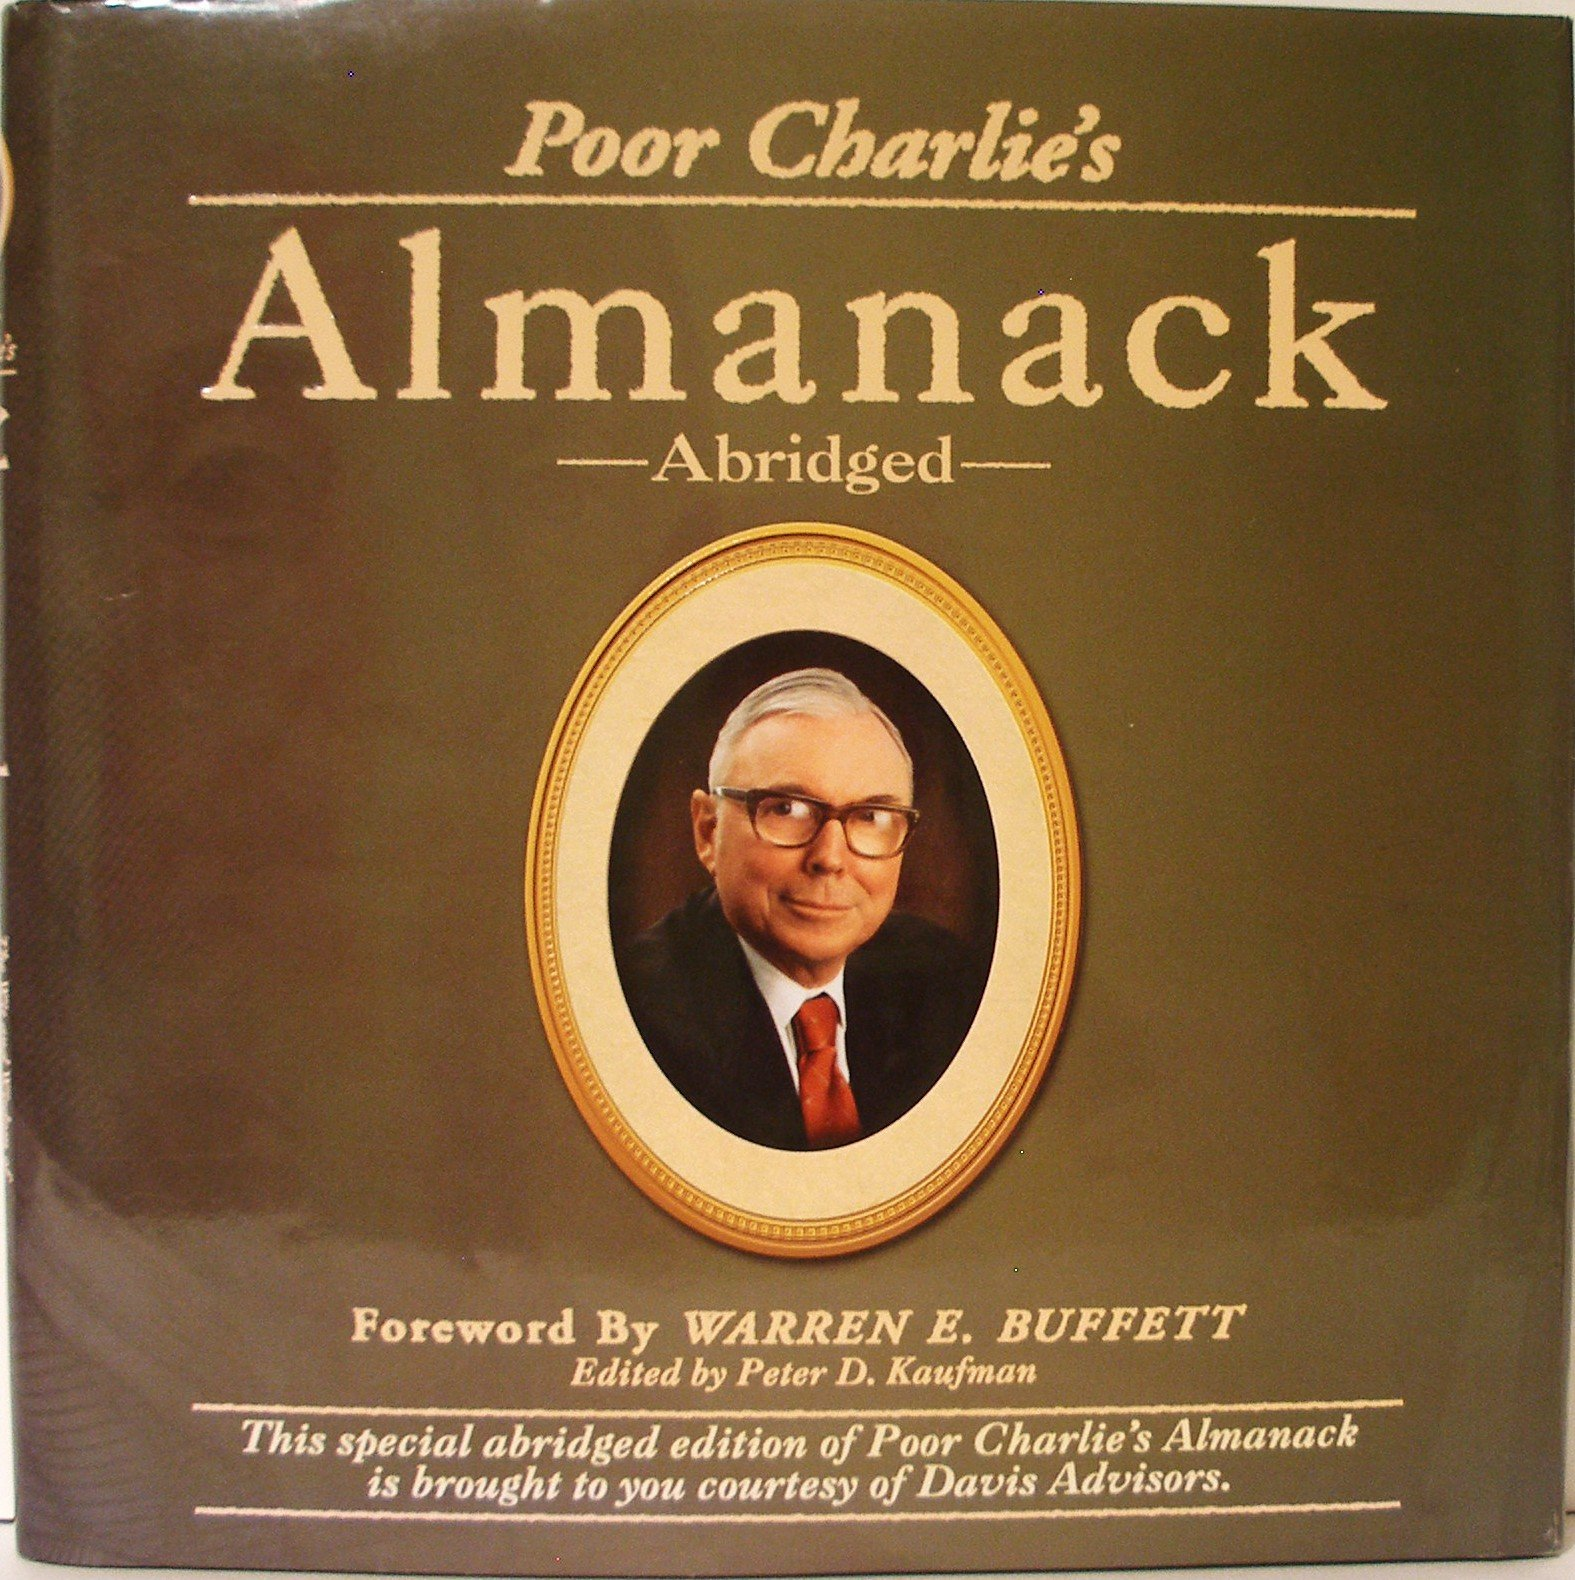 Book Cover of Poor Charlie's Almanack